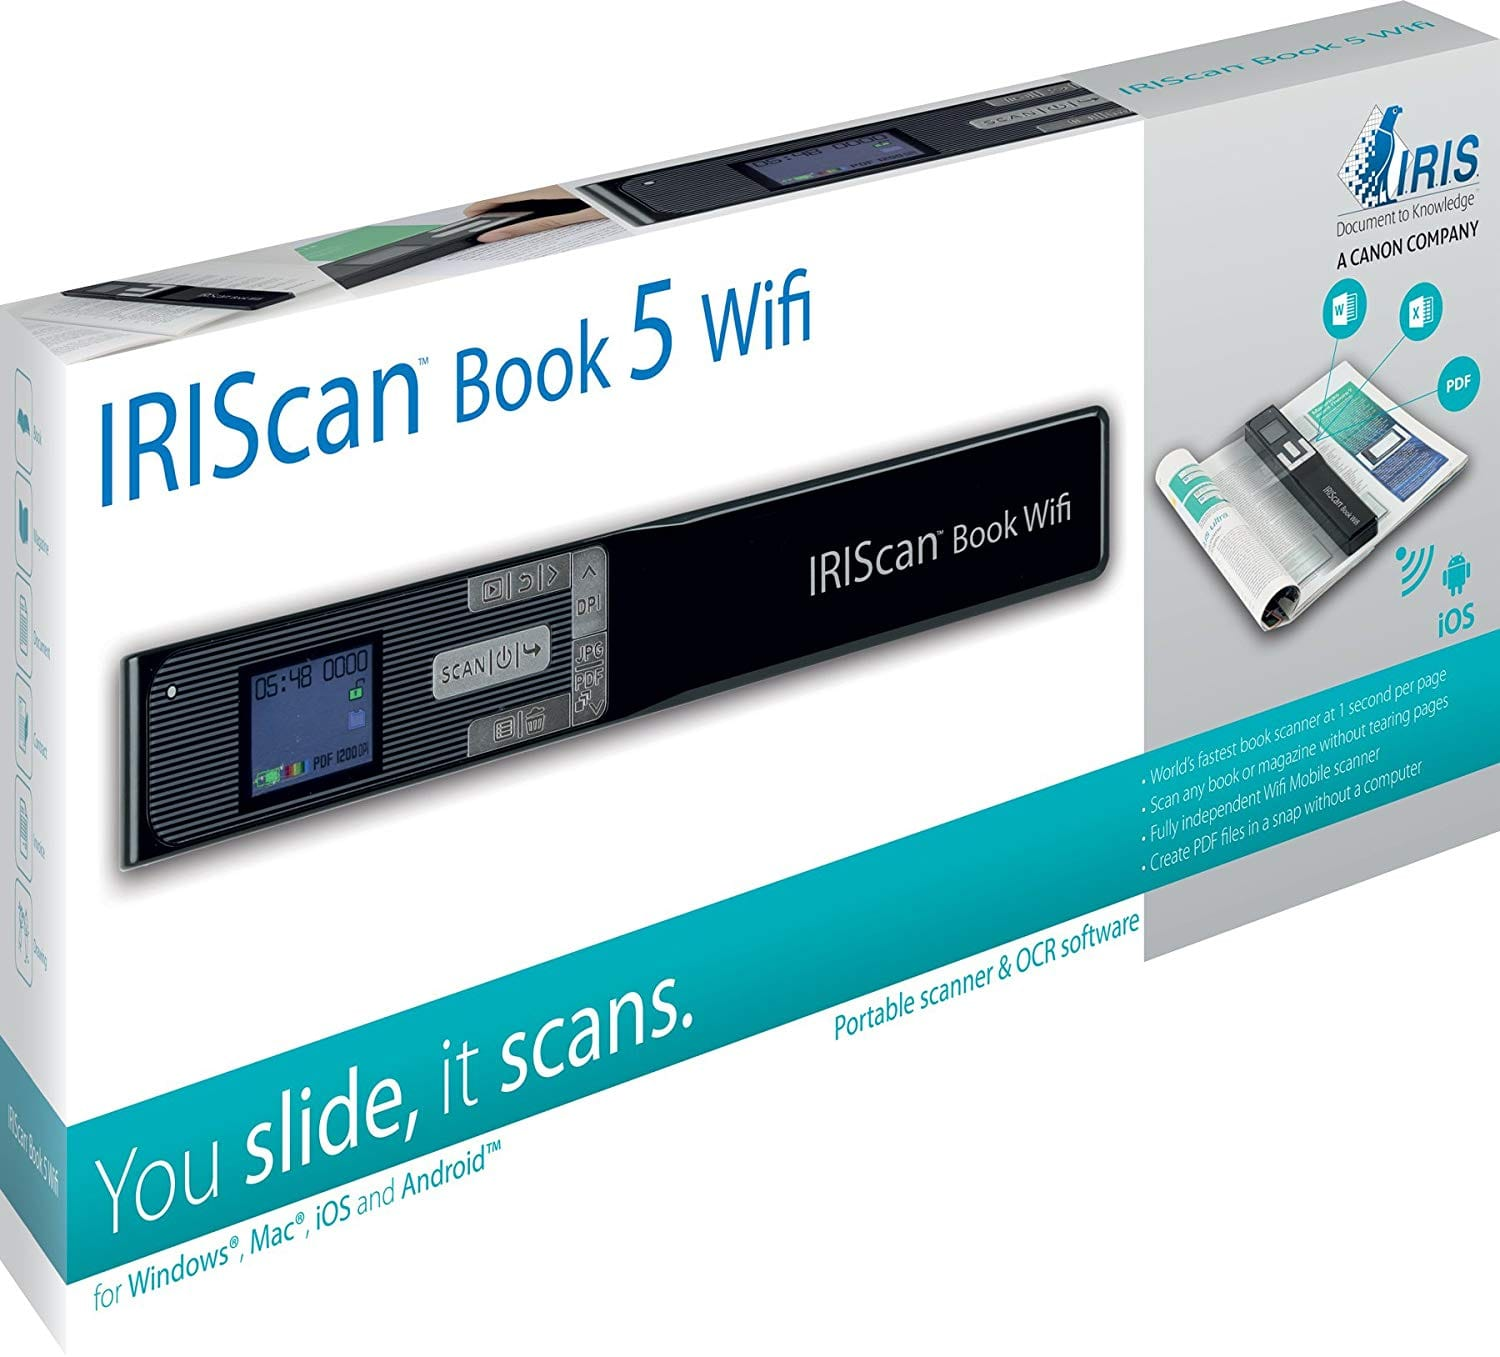 IRIScan-book-5